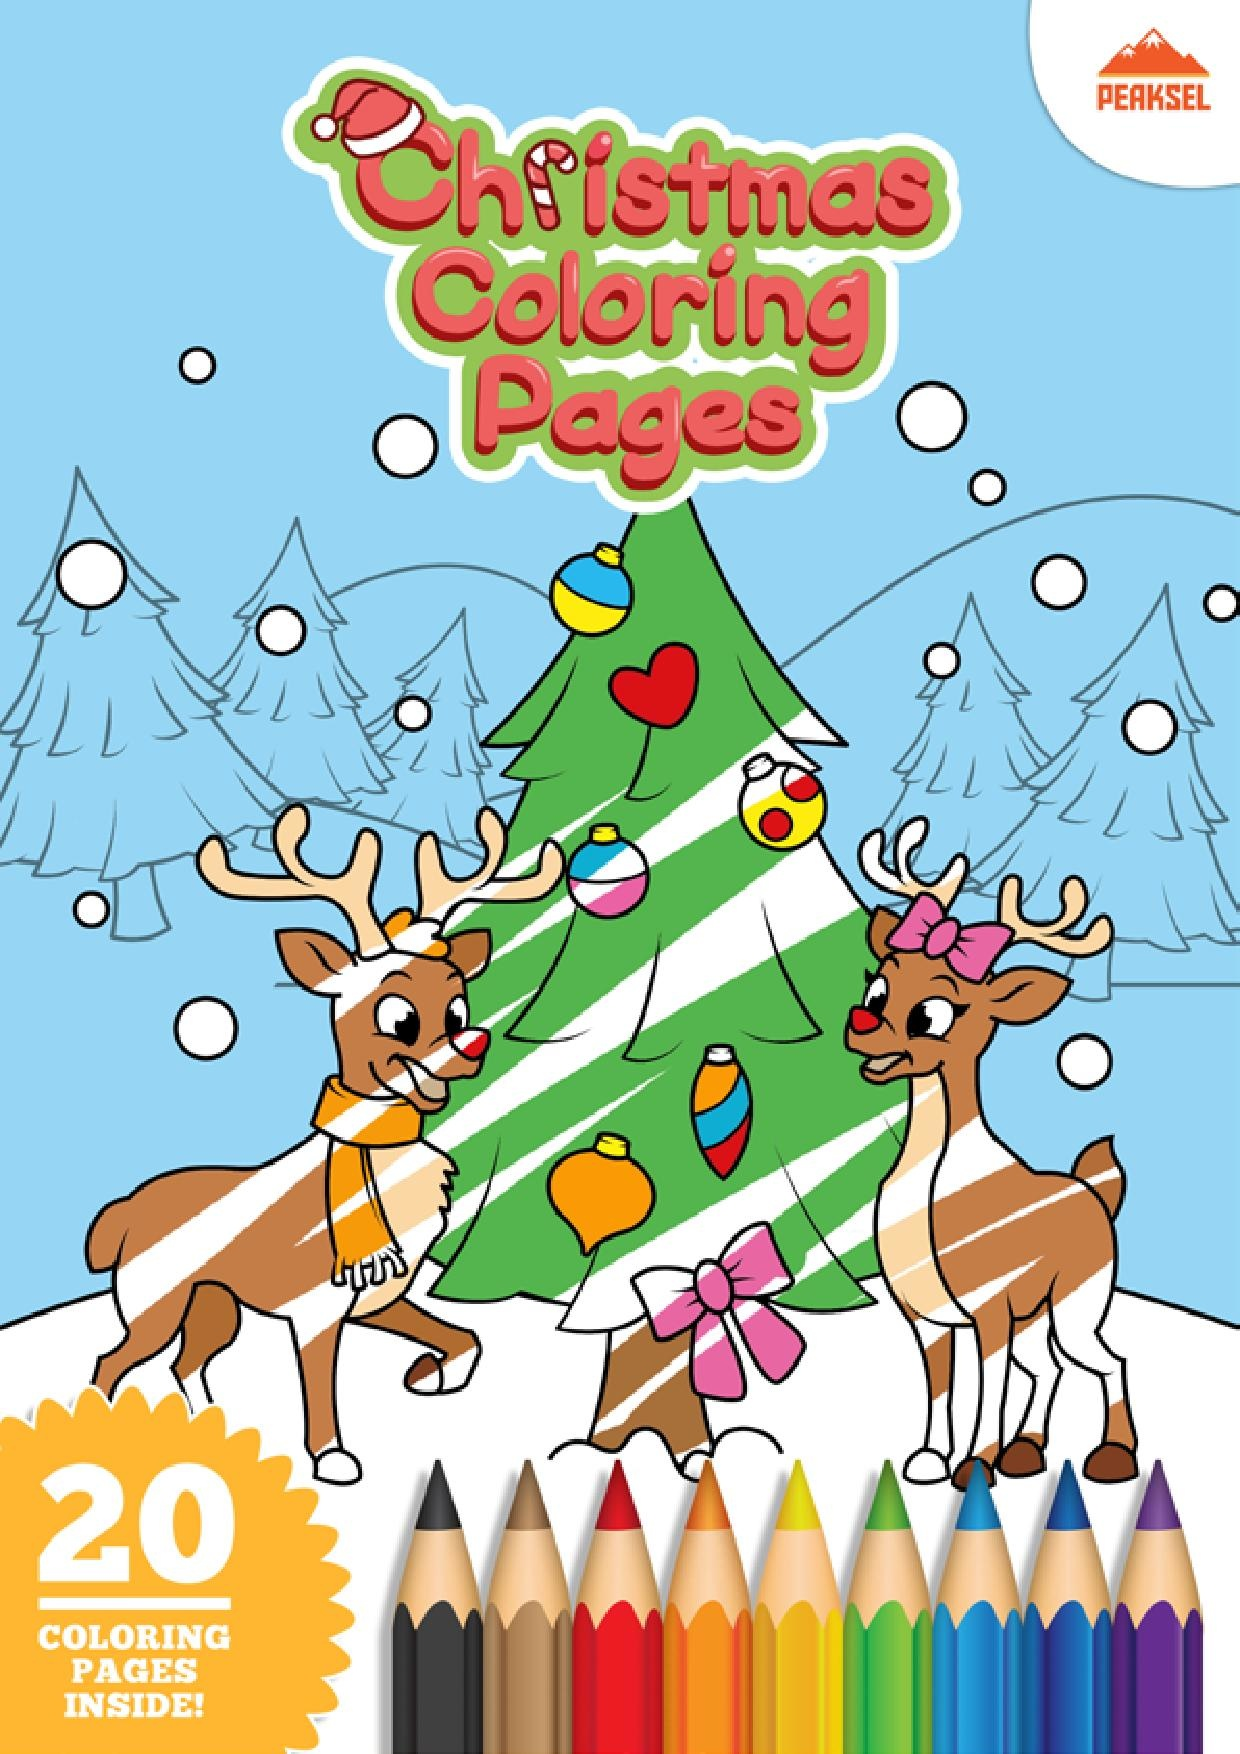 File:Christmas Coloring Pages.pdf - Wikimedia Commons